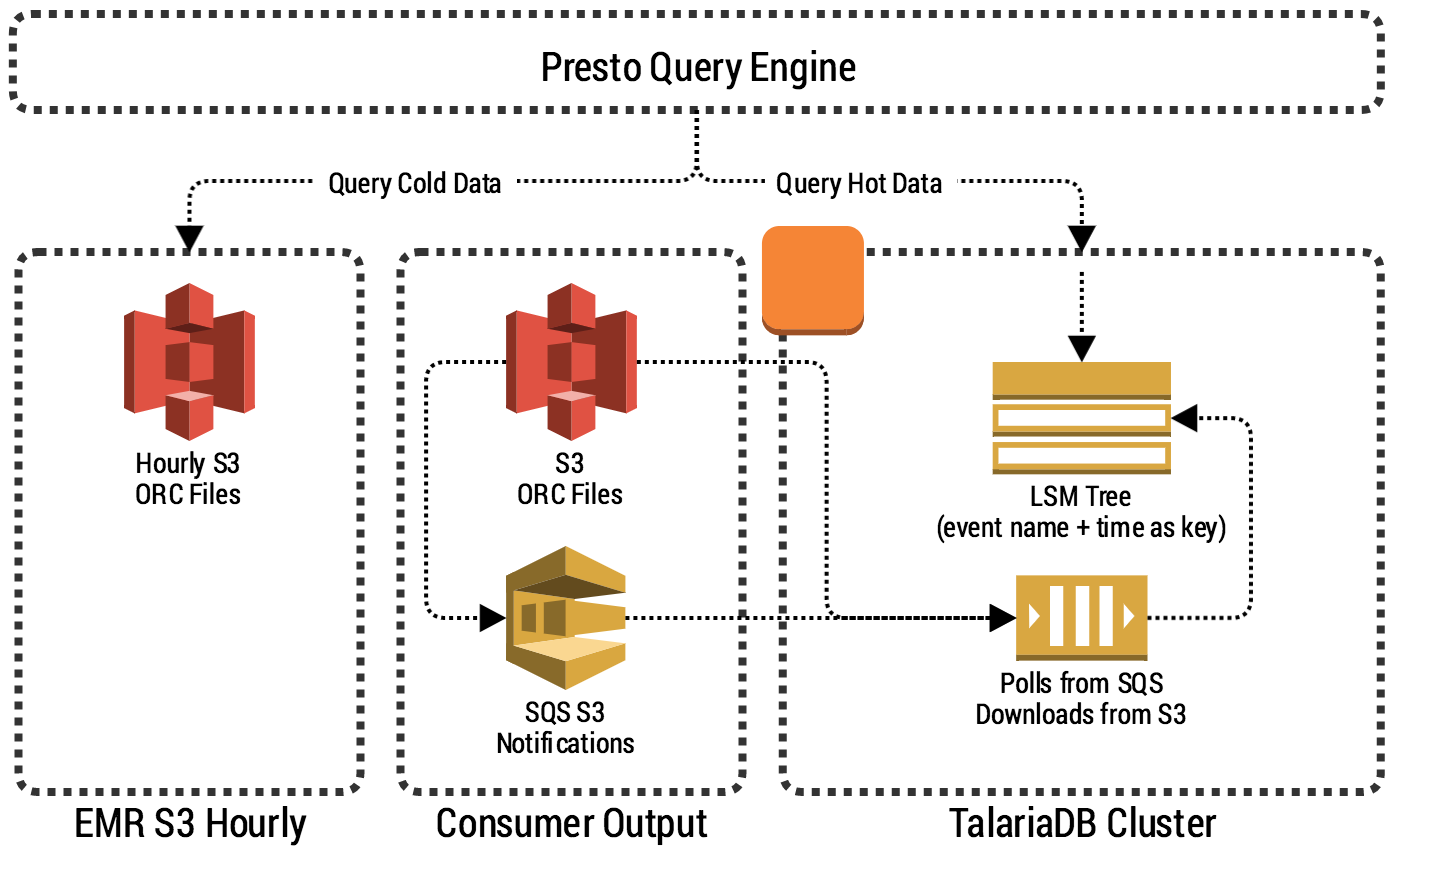 Querying Big Data in Real-Time with Presto & Grab's TalariaDB